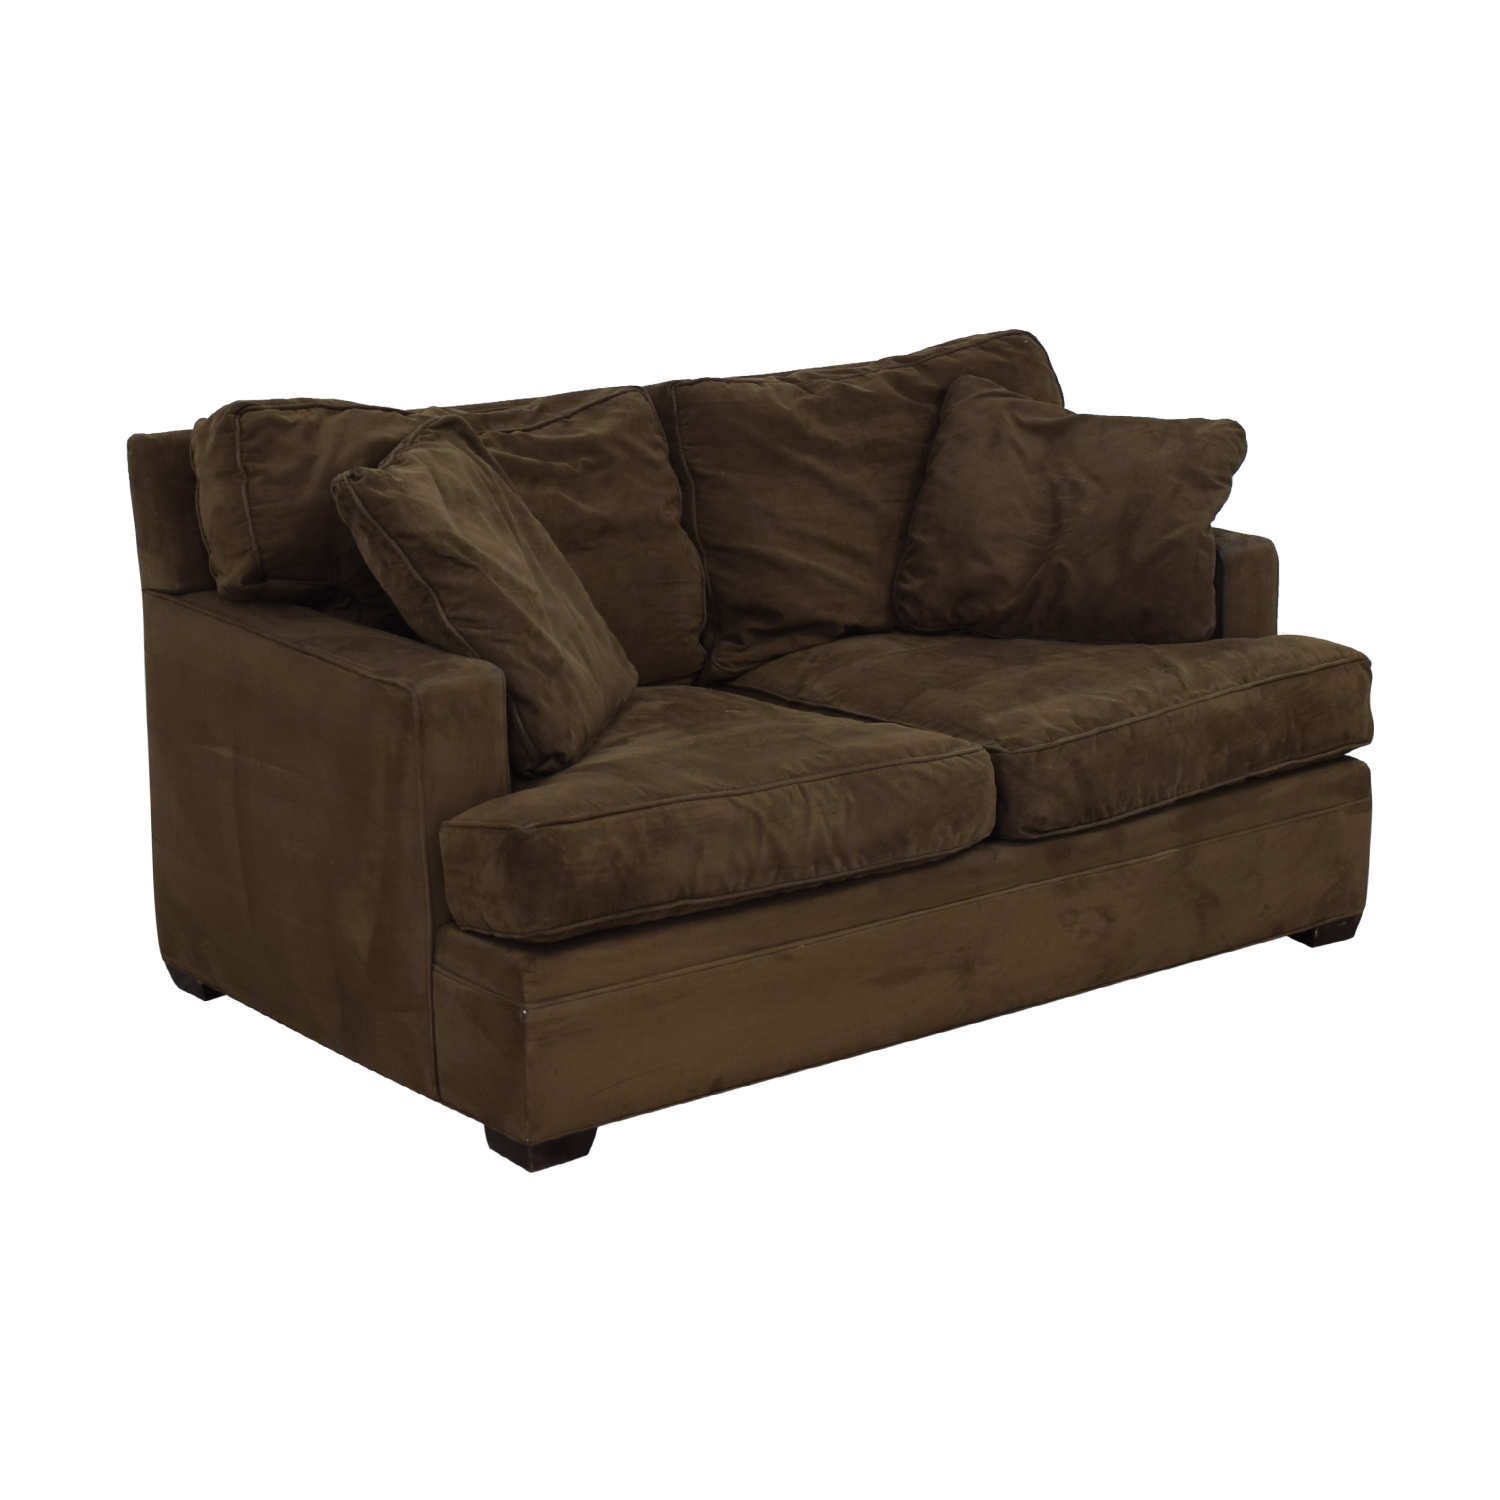 Crate & Barrel Crate & Barrel Brown Suede Loveseat nj